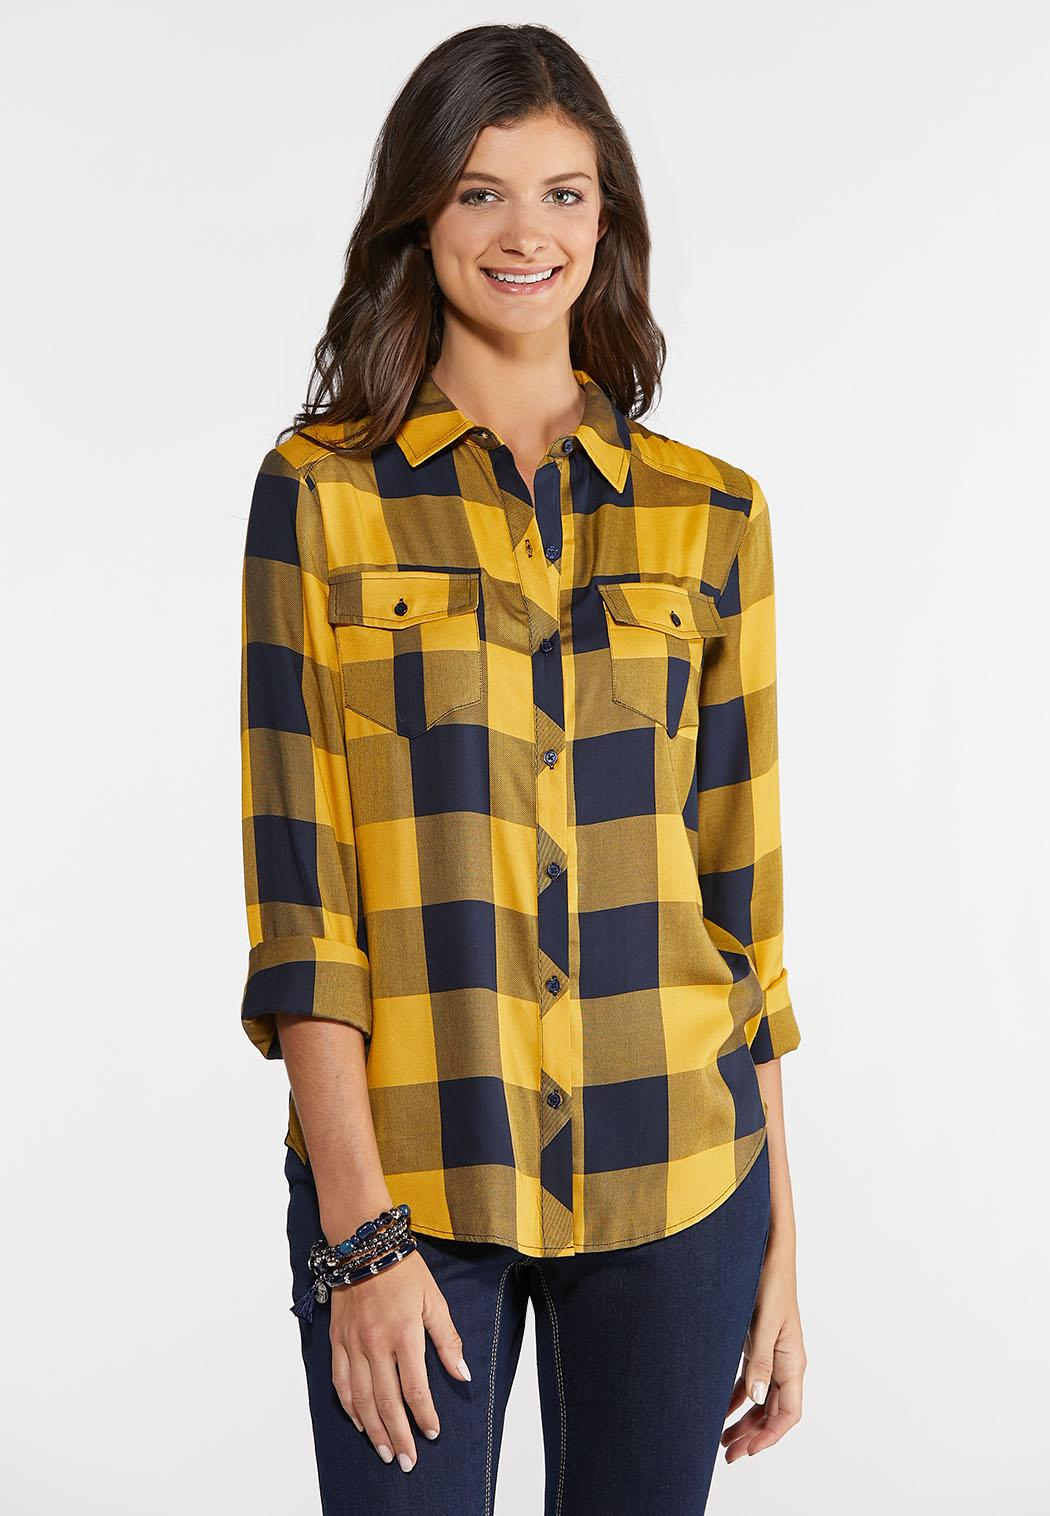 Gold And Navy Plaid Shirt